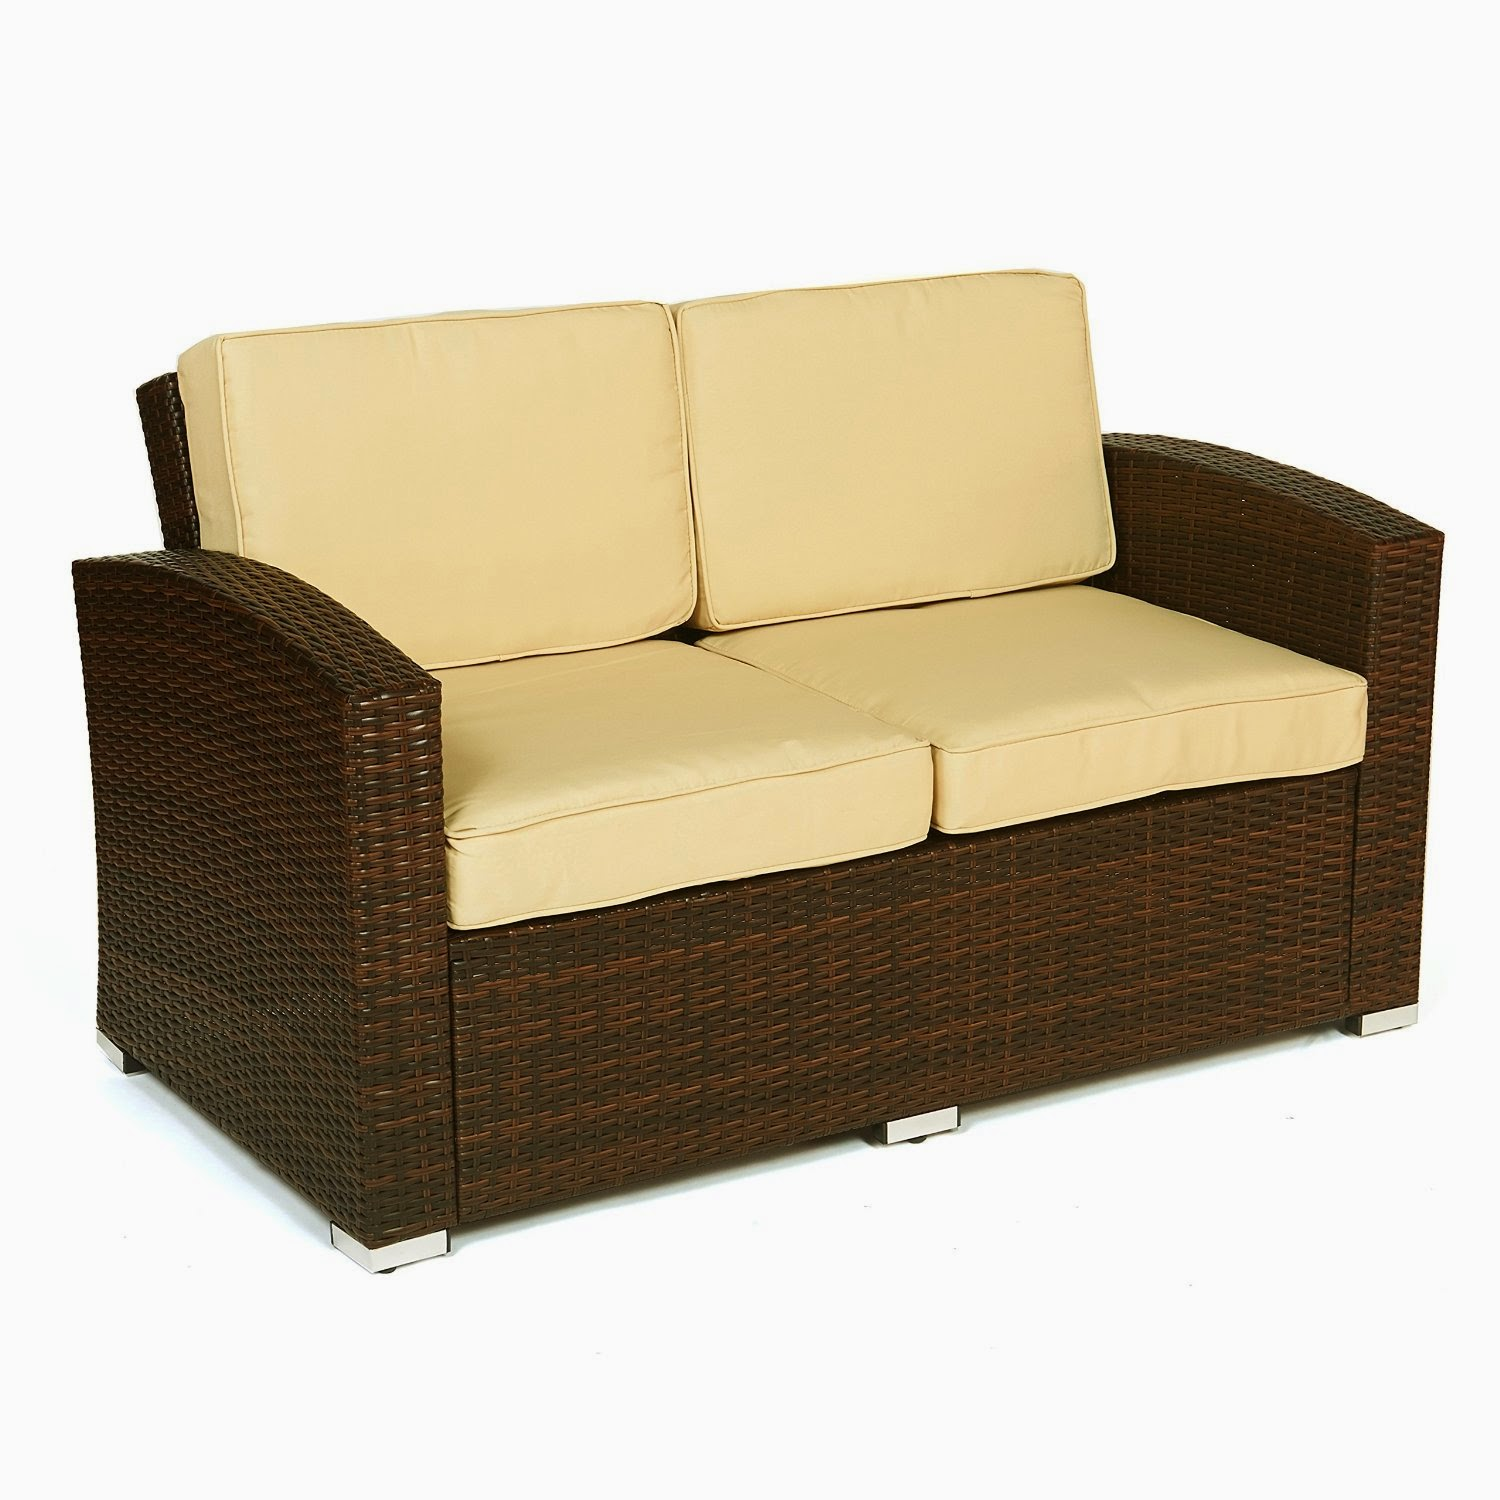 Discount special sale off 58 for outdoor furniture sofa for Patio sofa sale